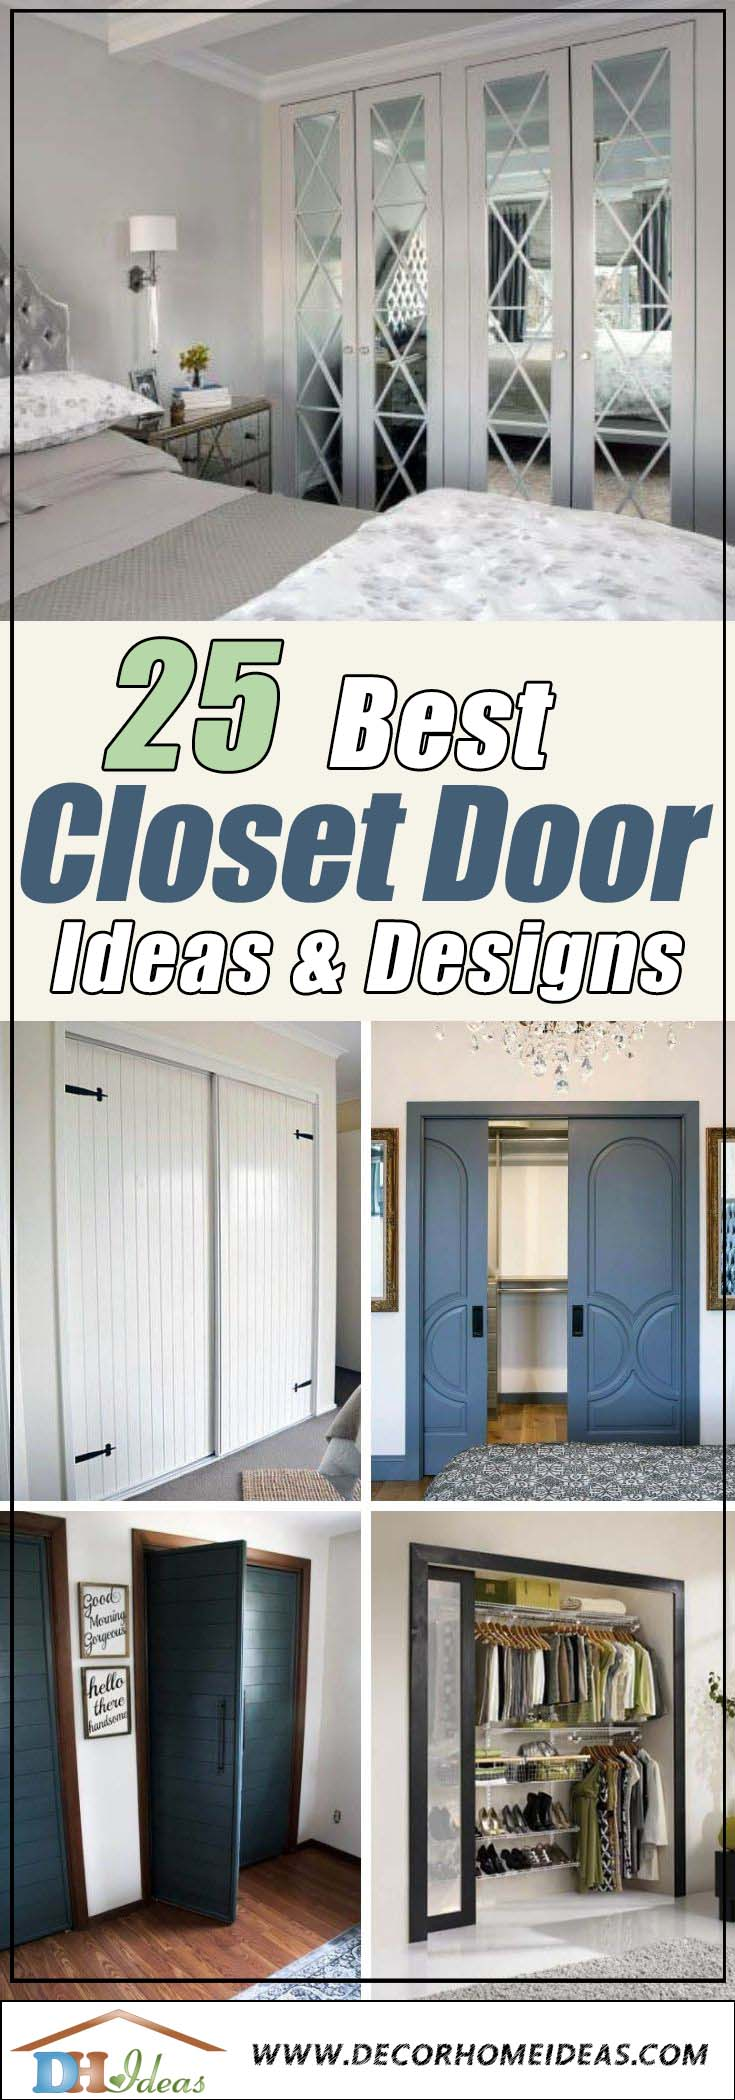 Best Closet Door Ideas #closet #door #interior #decorhomeideas